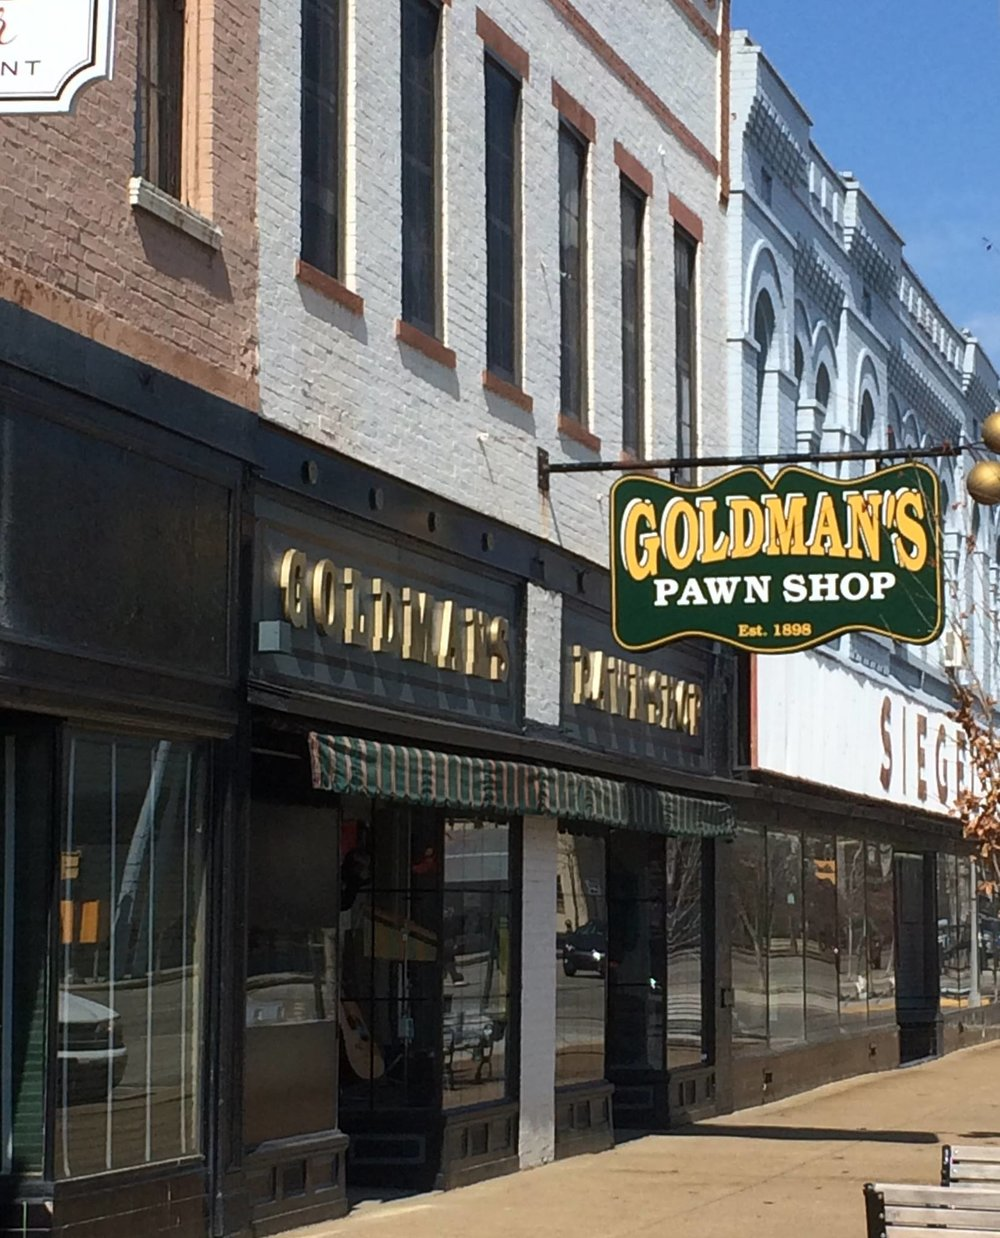 GOLDMAN'S PAWN SHOP